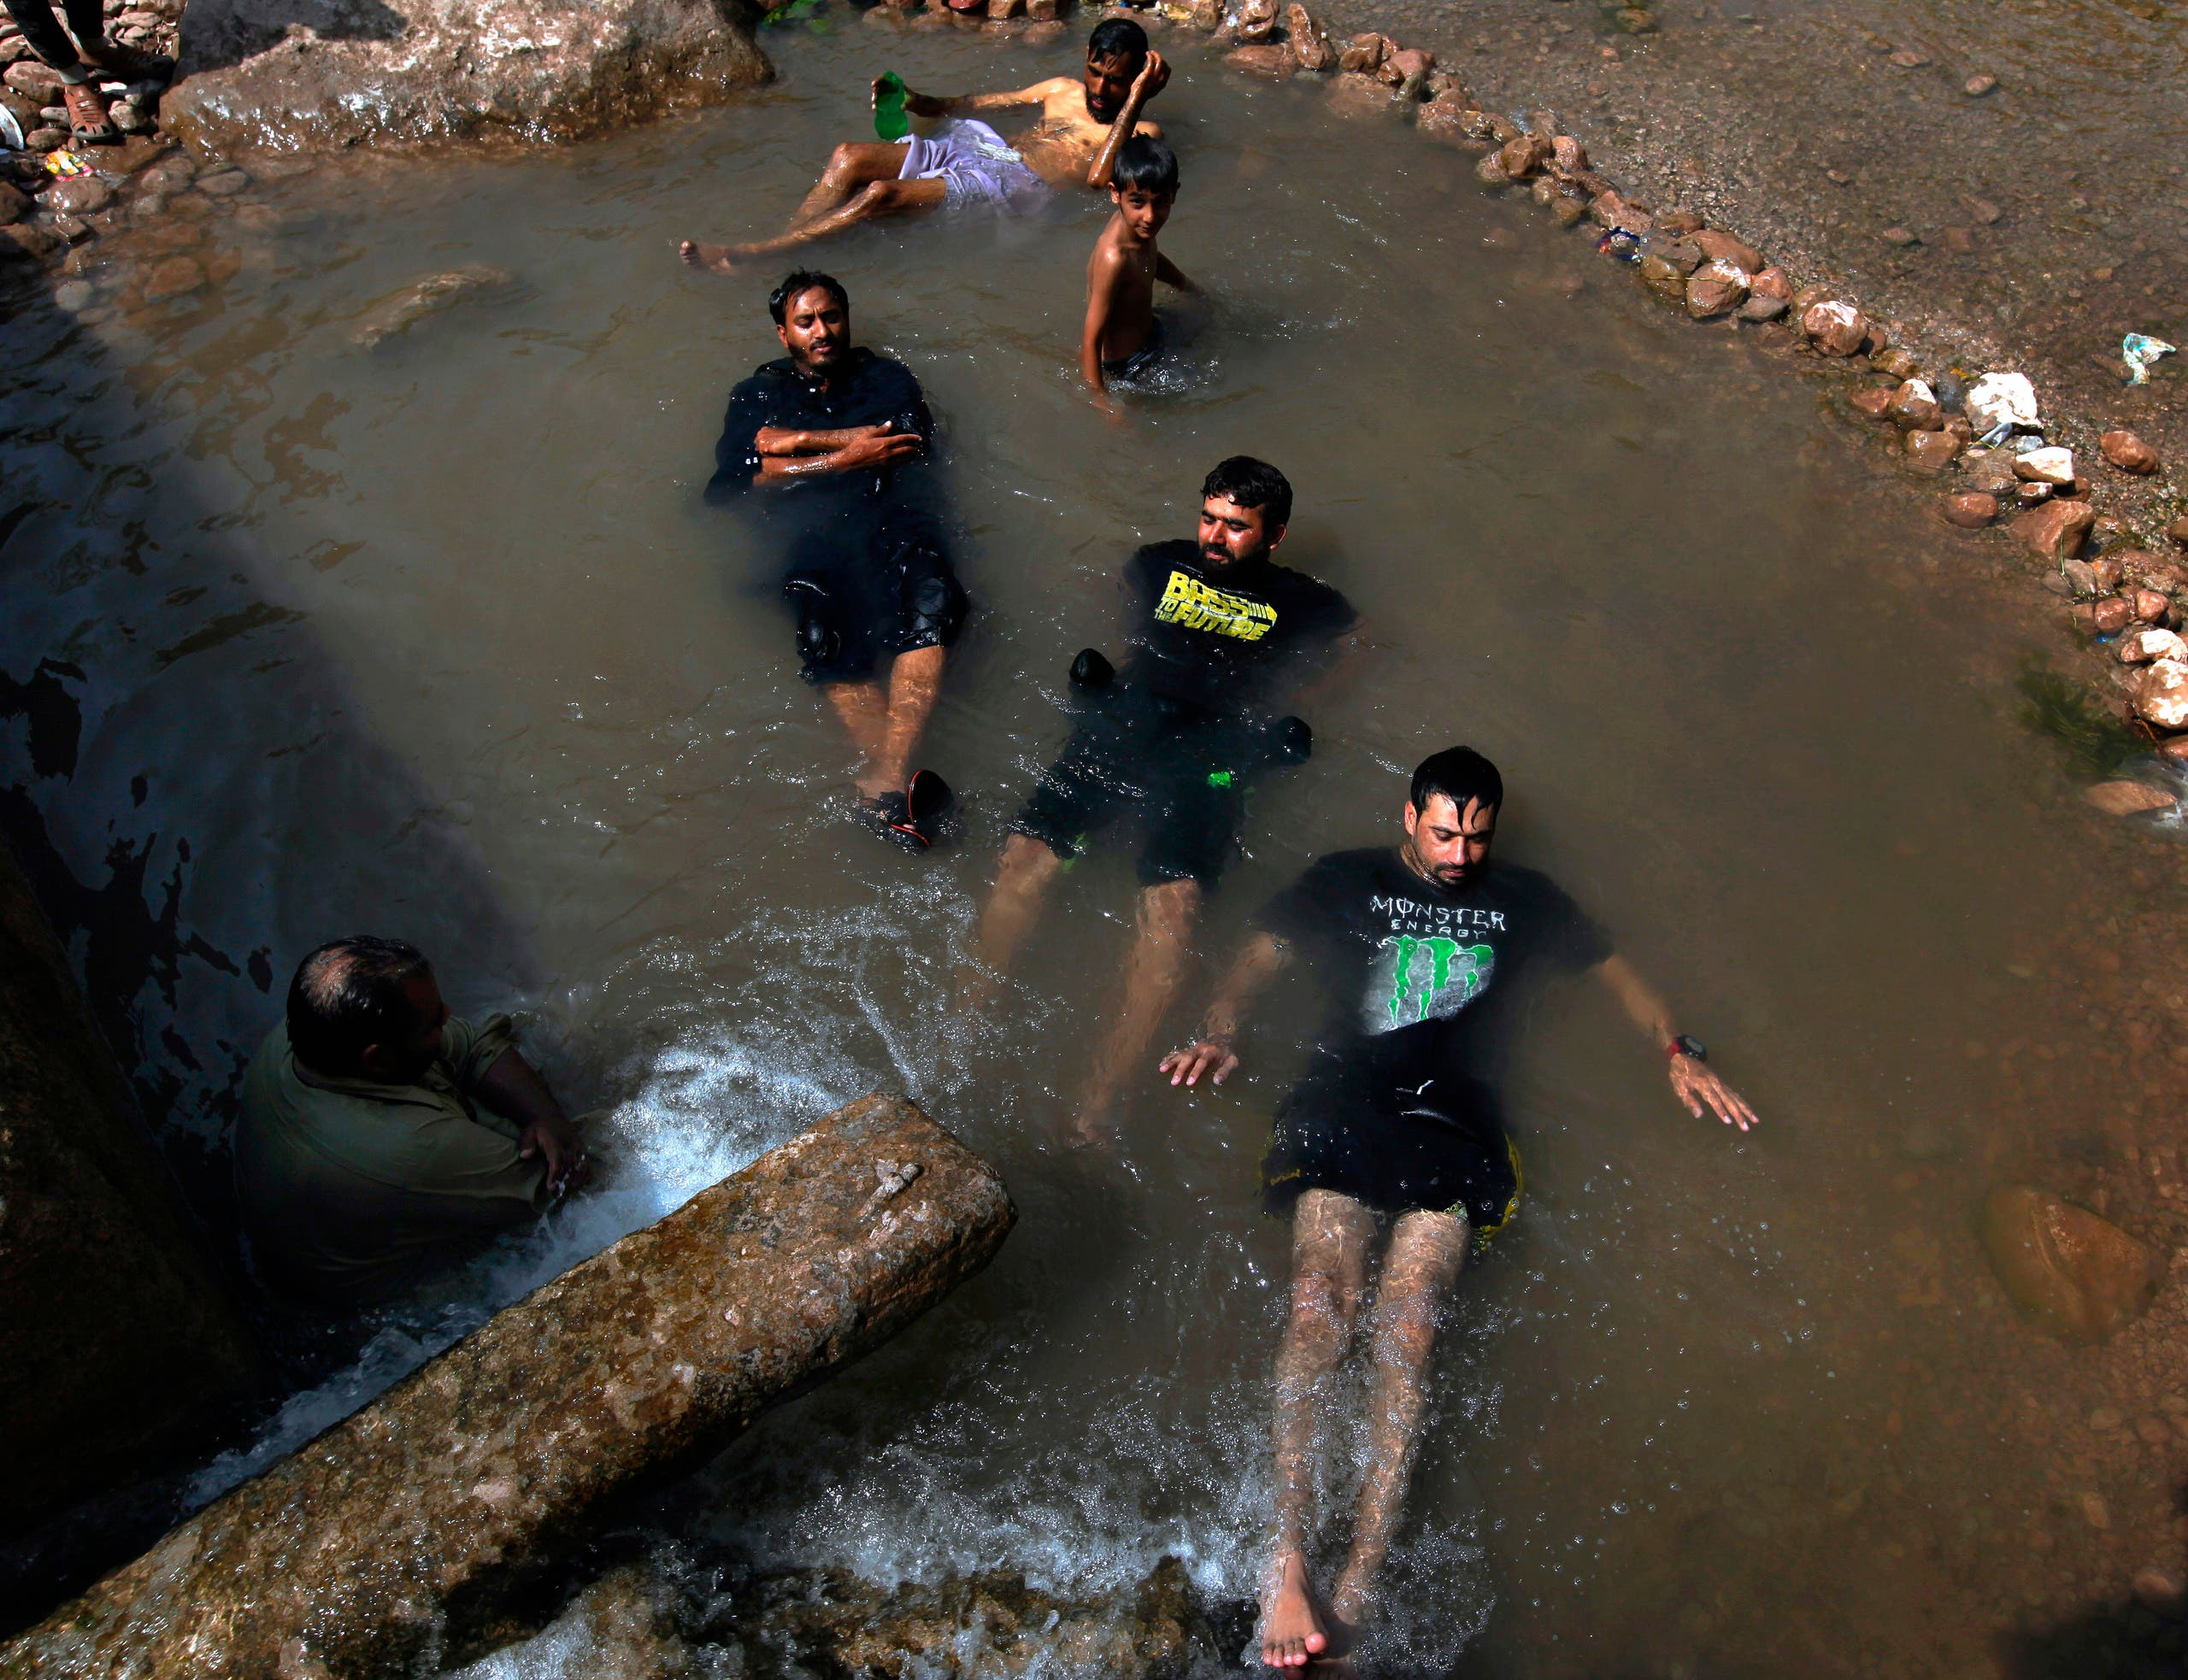 People cool off in a stream during a heat wave, in Islamabad, Pakistan, on June 3, 2018. According to Pakistan's state-run Meteorological Department, many cities are facing heat wave conditions with temperatures reaching 49 C in Sibbi, Moenjodaro, Jacobabad and Bakkar. (AP)